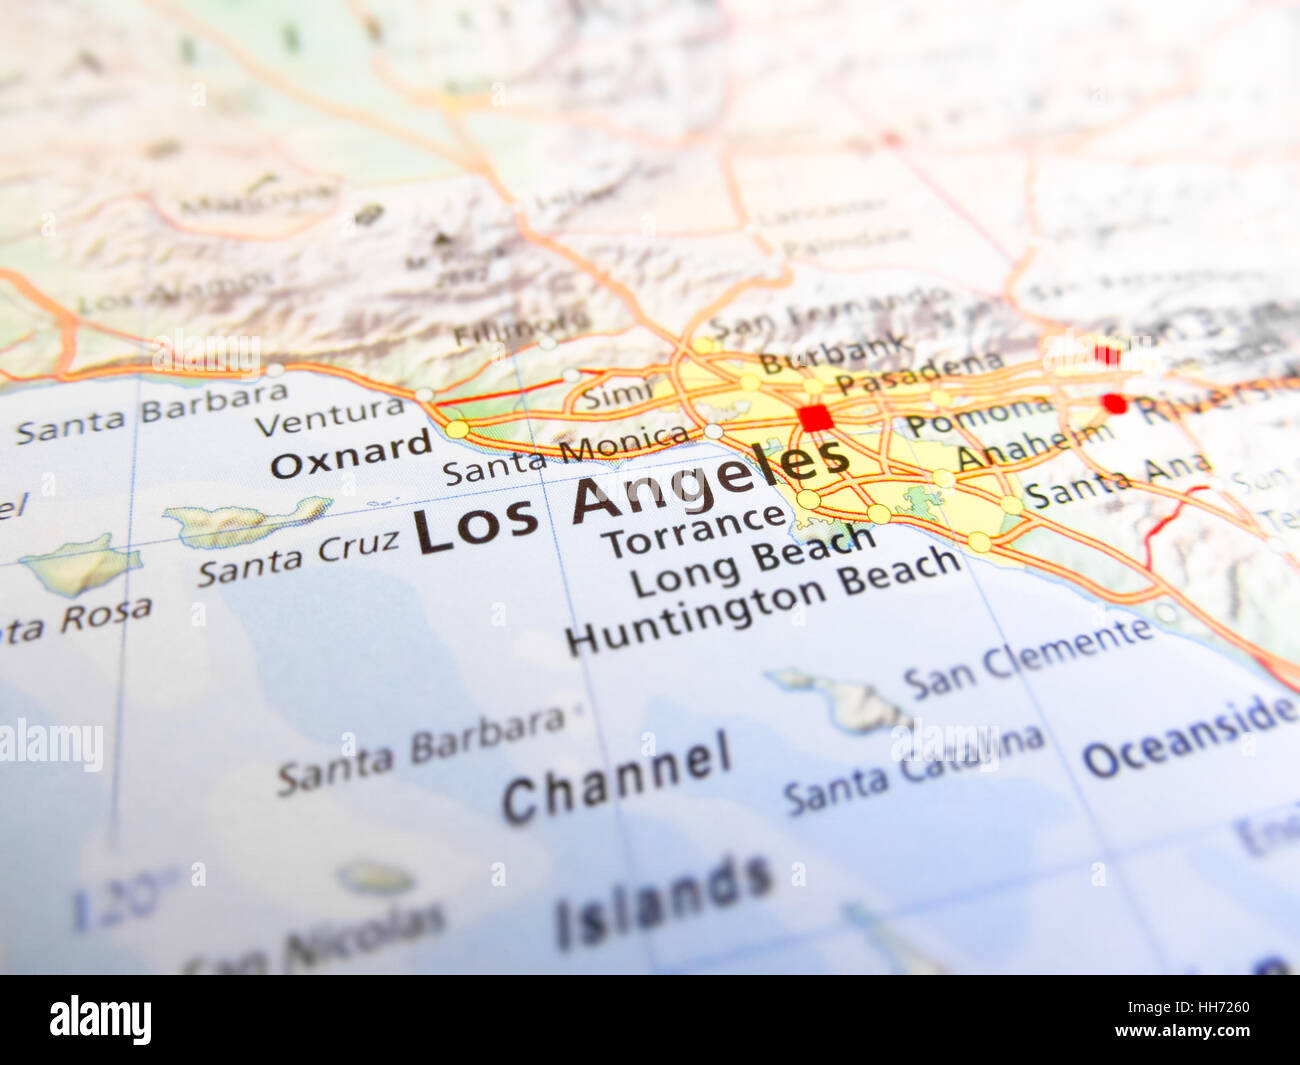 Los Angeles City Over A Road Map USA Stock Photo Royalty Free - Road map usa